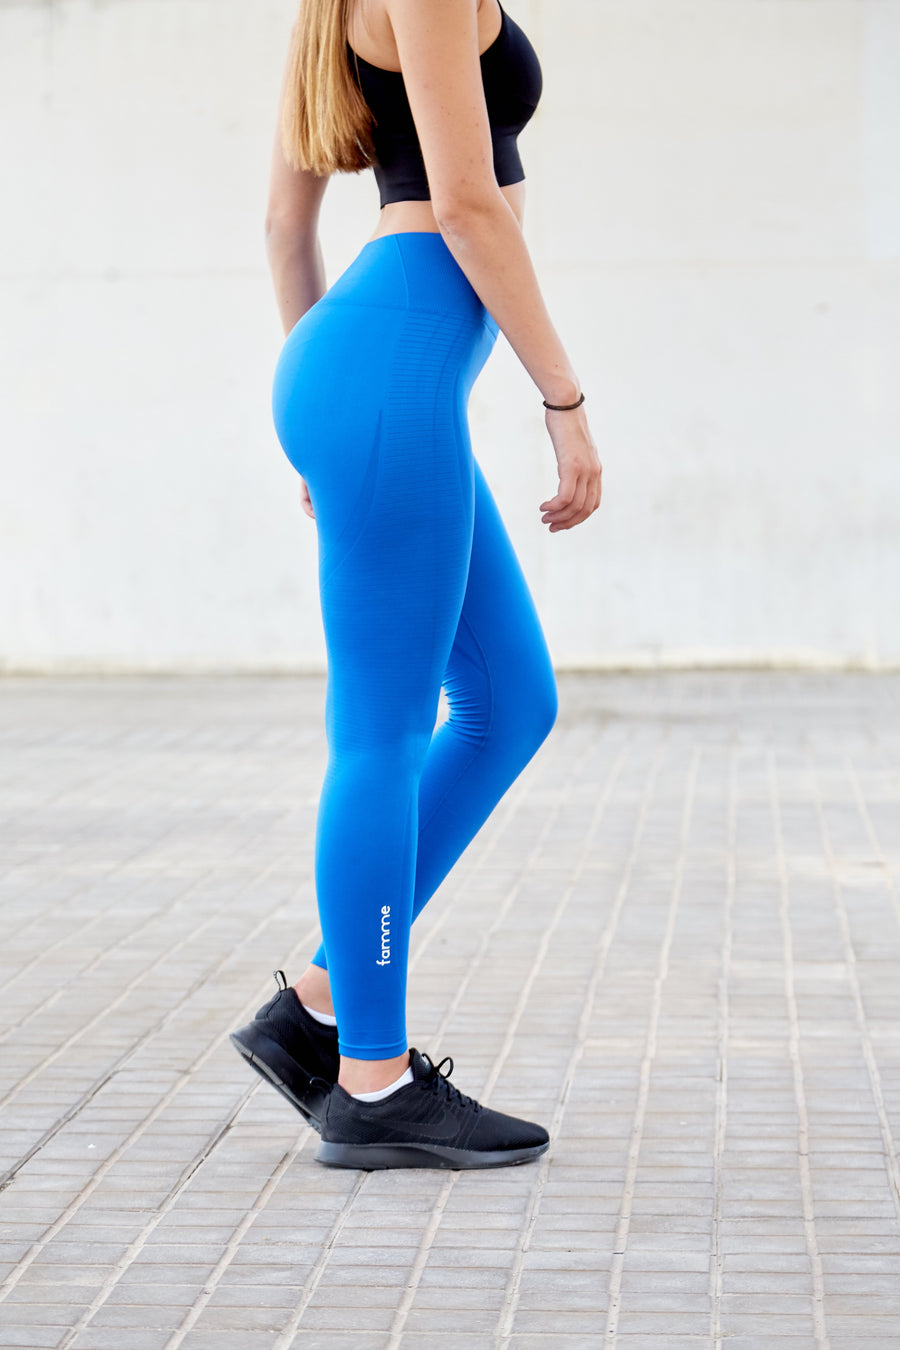 Nautical Blue Vortex Leggings